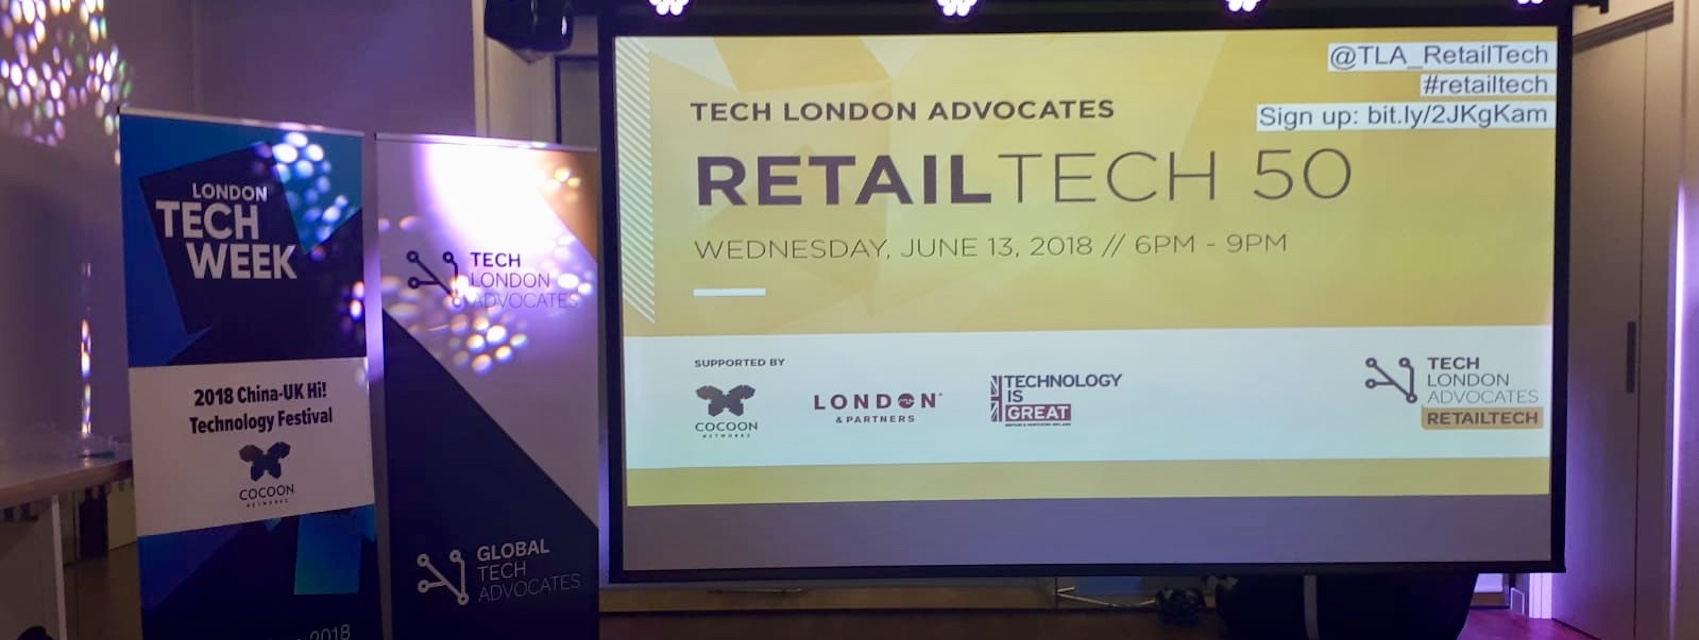 Dressipi Named One Of The Top 50 UK Retail Tech Companies by Tech London Advocates